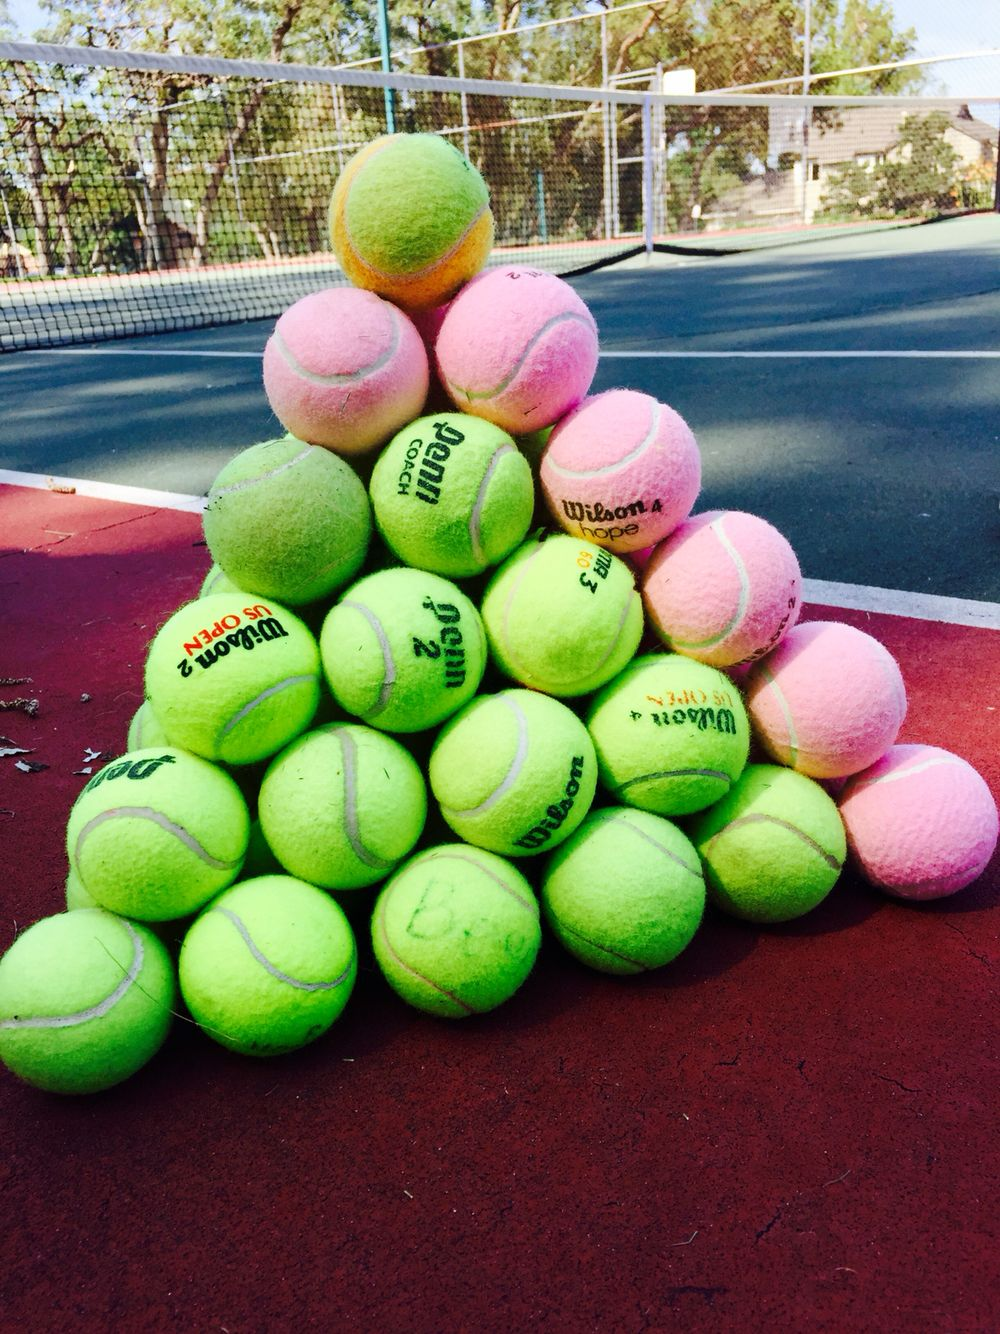 Every Year My Tennis Kids Build A Tennis Ball Pyramid So Of Course I Had To Take A Picture